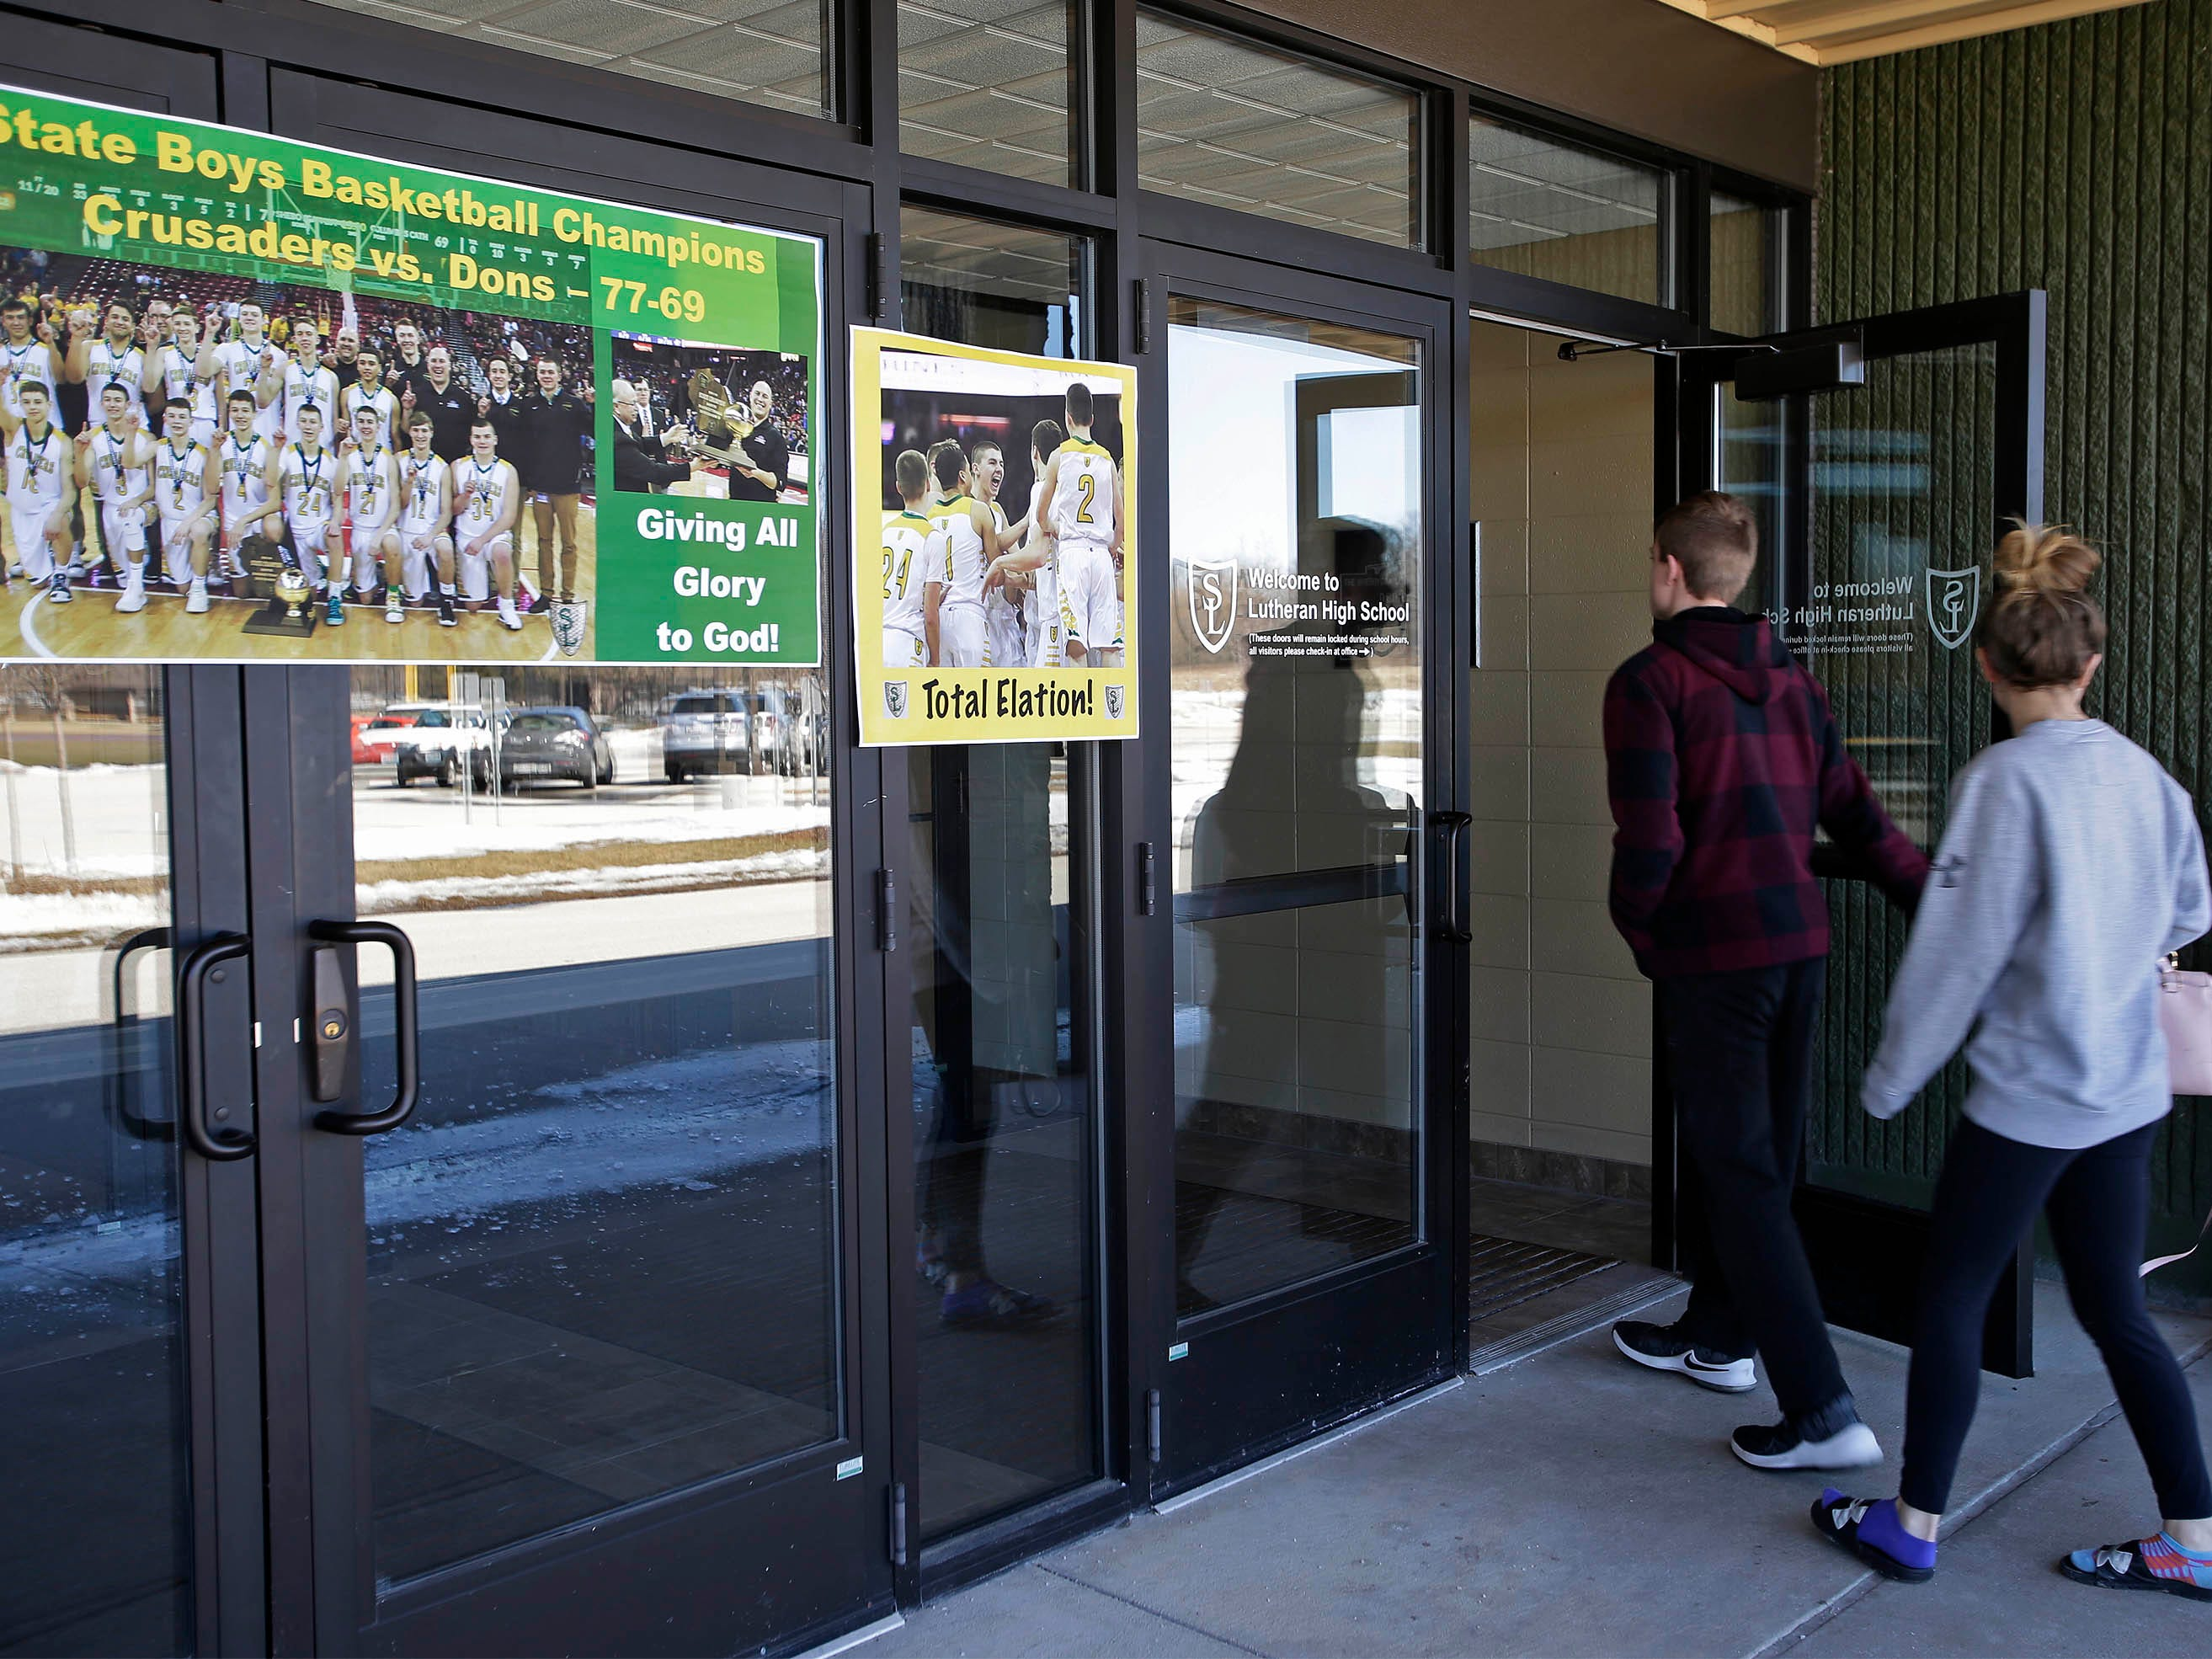 Sheboygan Lutheran fans enter the school for a rally celebrating the boys basketball team's WIAA Div. 5 State Championship, Sunday, March 17, 2019, in Sheboygan, Wis.